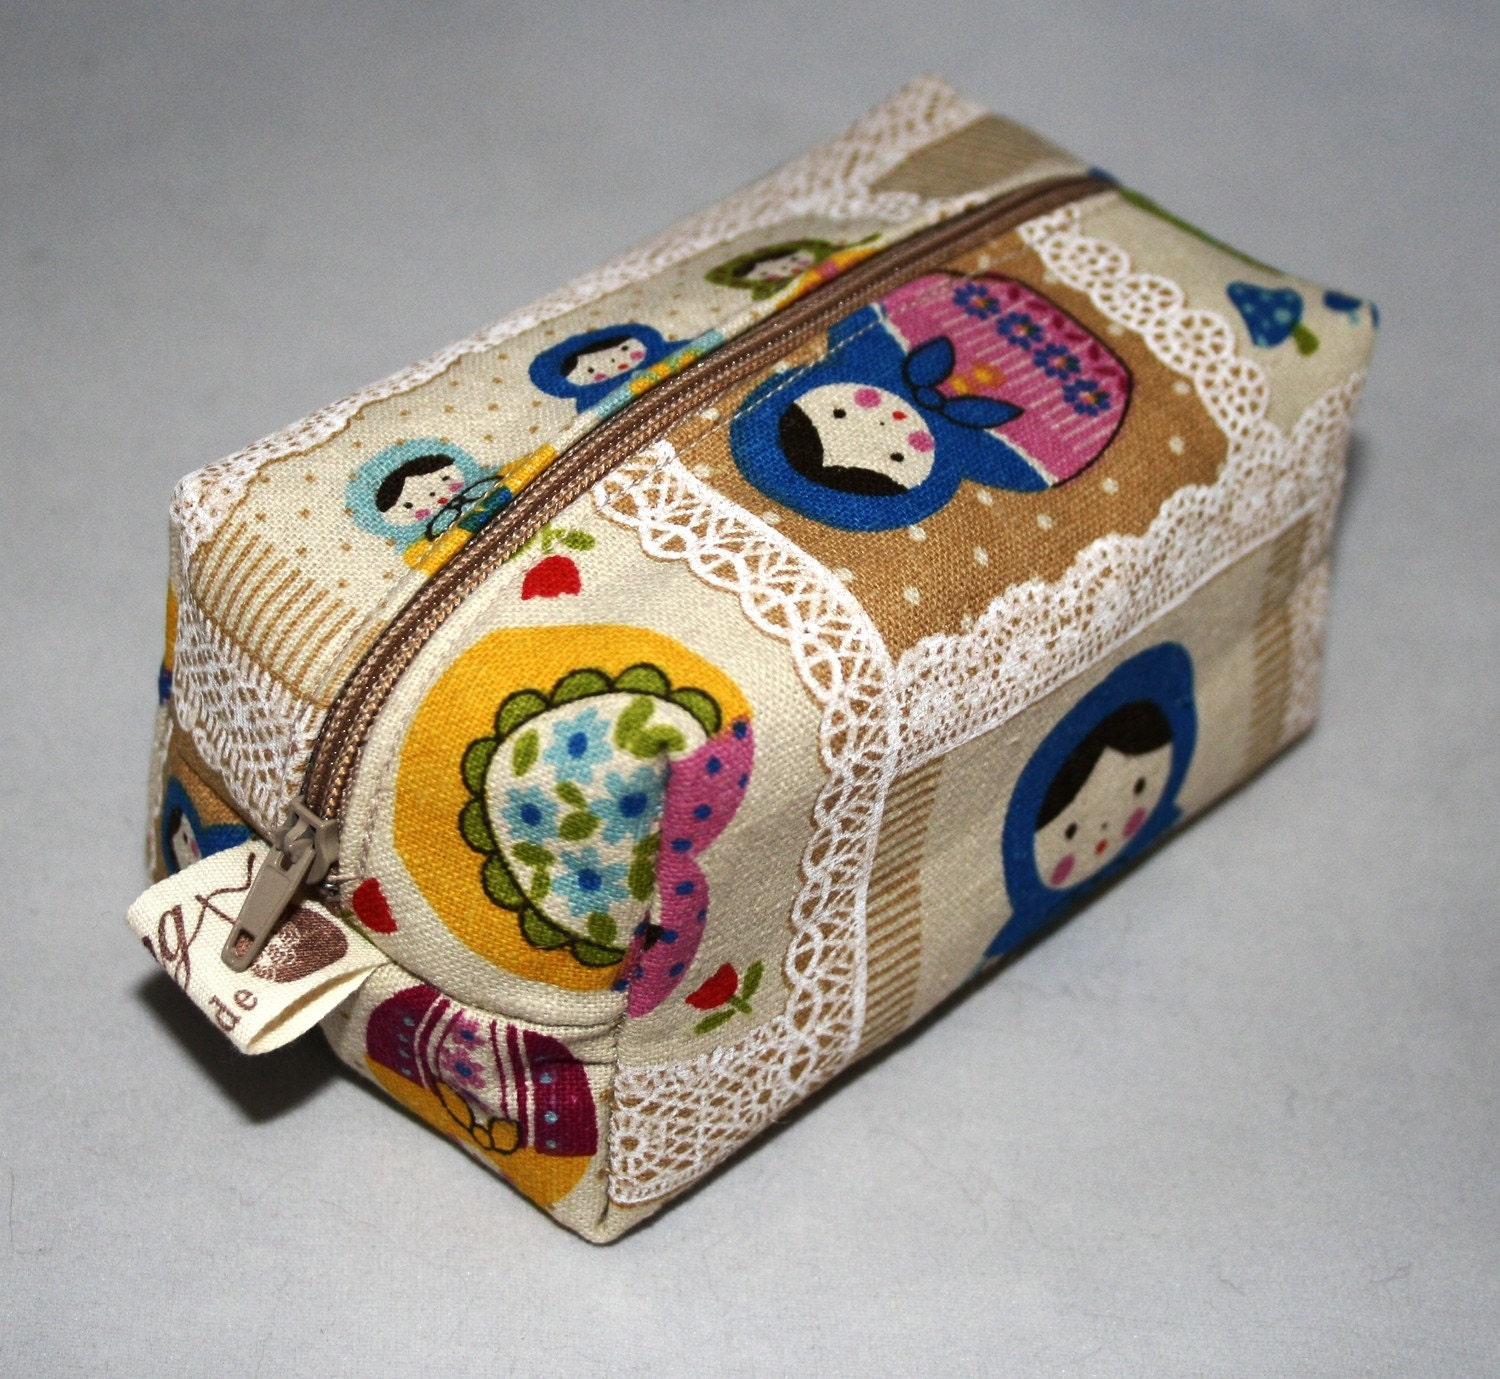 Russian Doll Print Sewing Makeup Cosmetics Cube Bag